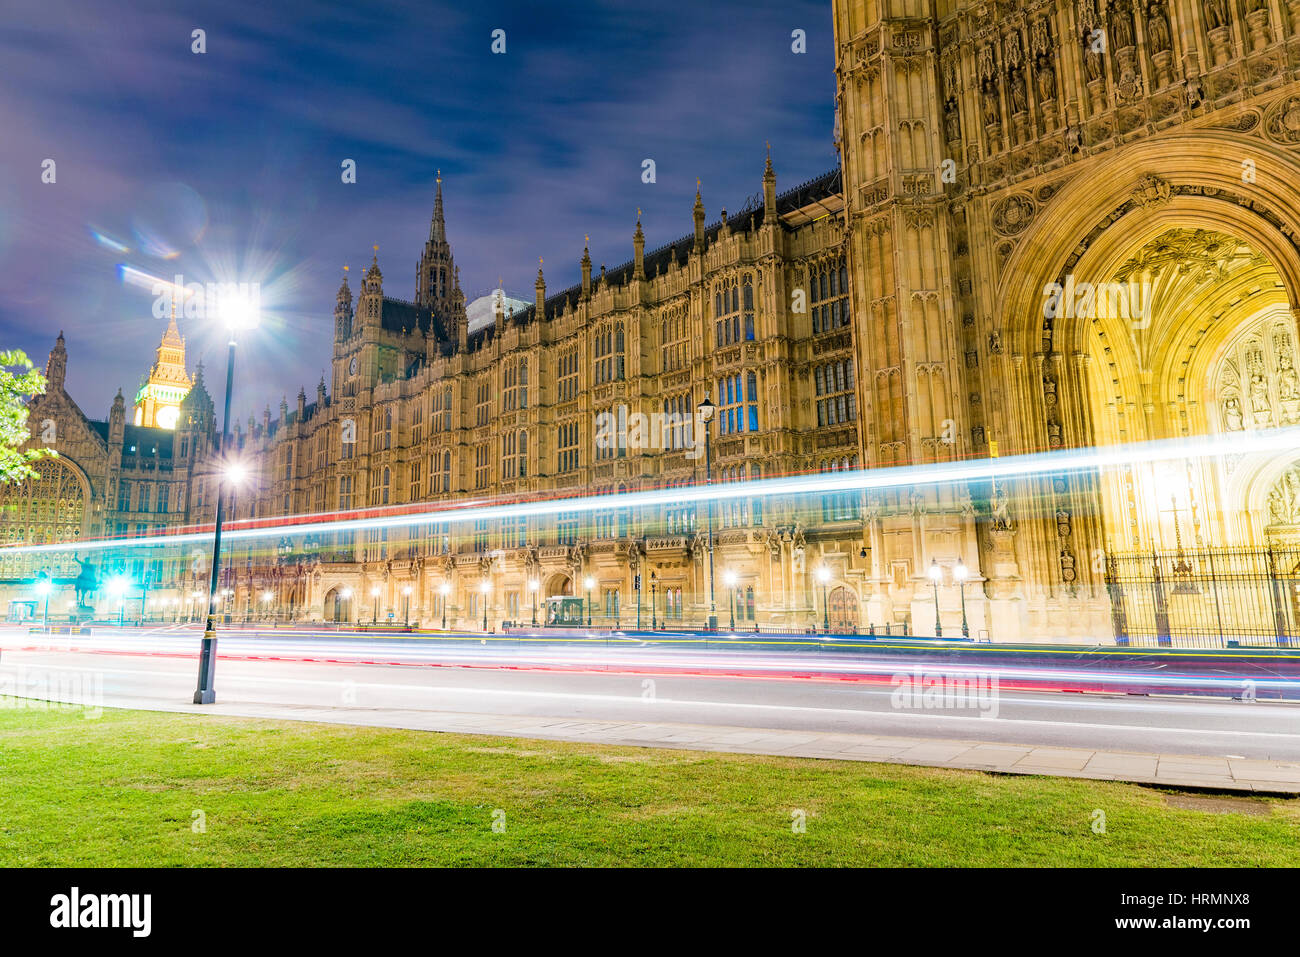 Houses of Parliament at night with ligh trails Stock Photo